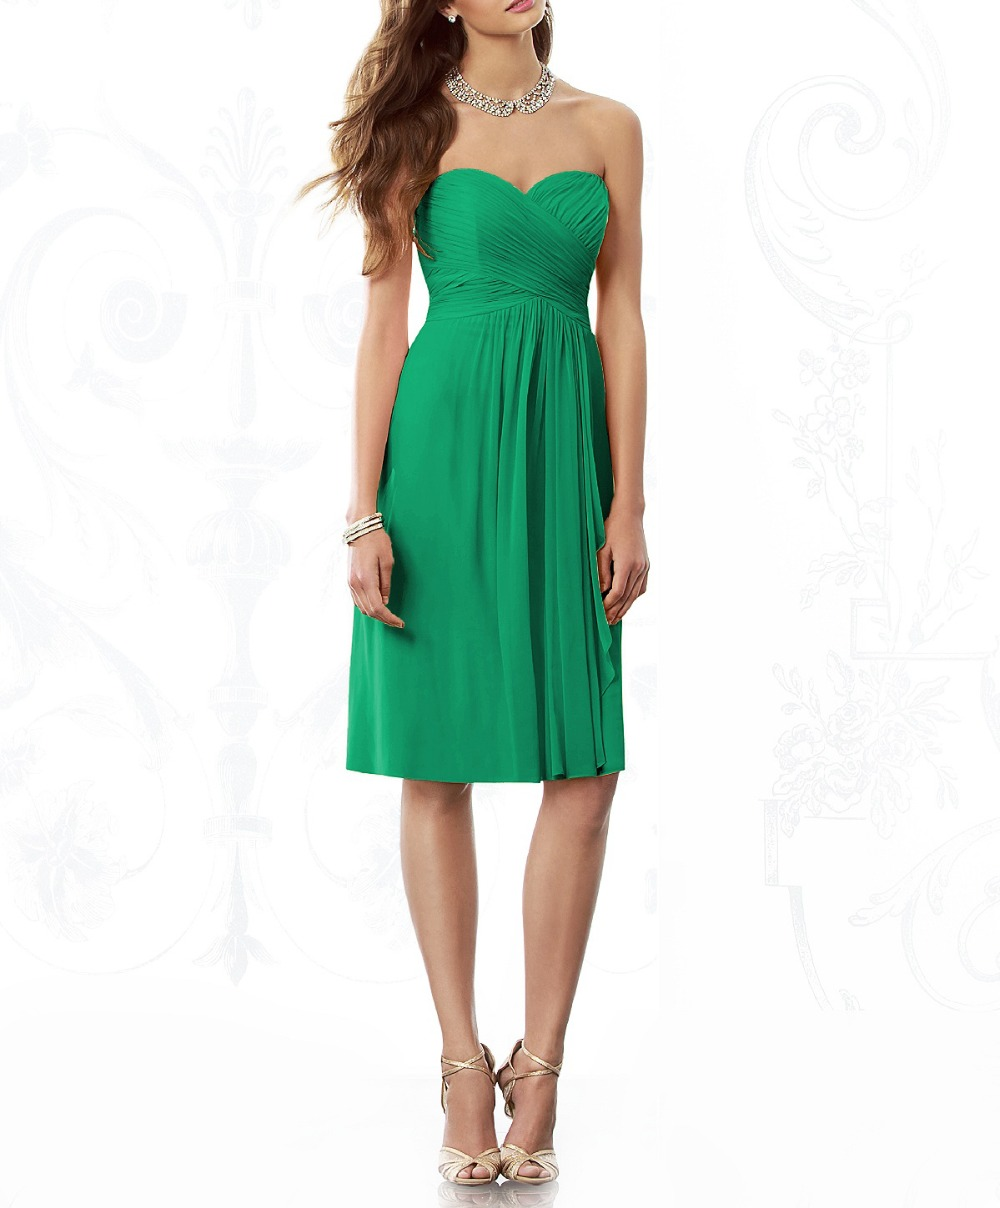 Affordable Wedding Guest Dresses: 2016 Emerald Green Cheap Bridemaid Dresses Under $50